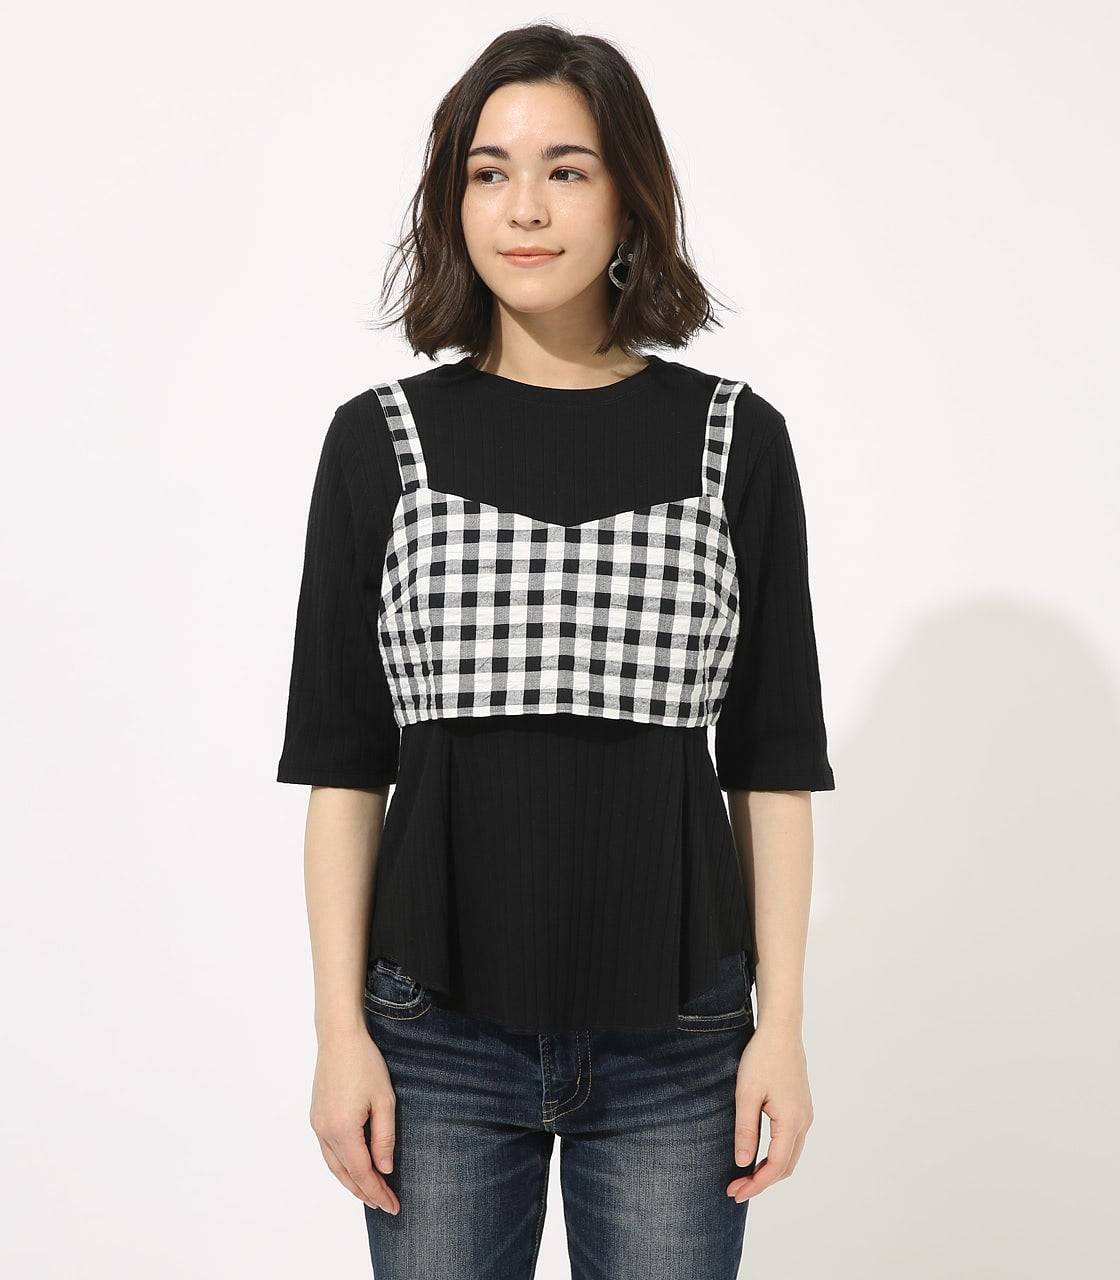 【AZUL BY MOUSSY】GINGHAM CHECK BUSTIER TOPS 【MOOK49掲載 90054】 詳細画像 柄BLK 4